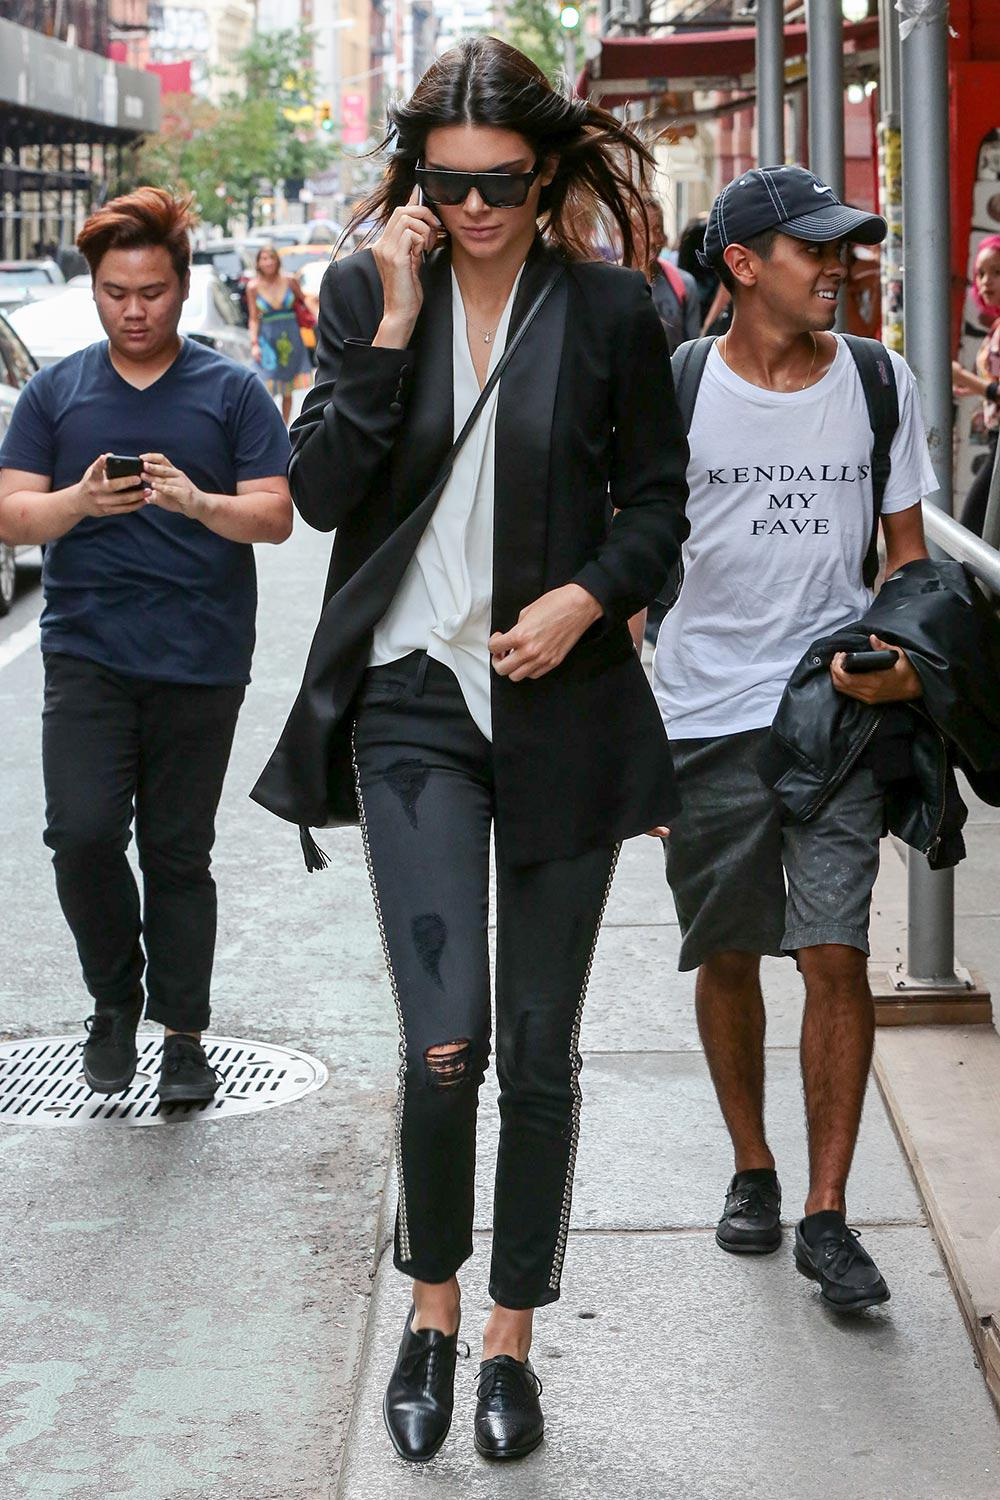 Take your cue from Kendall Jenner and incorporate tailoring into your daytime wardrobe http://t.co/OI4nqcMoQ5 http://t.co/m7ZOVitjja